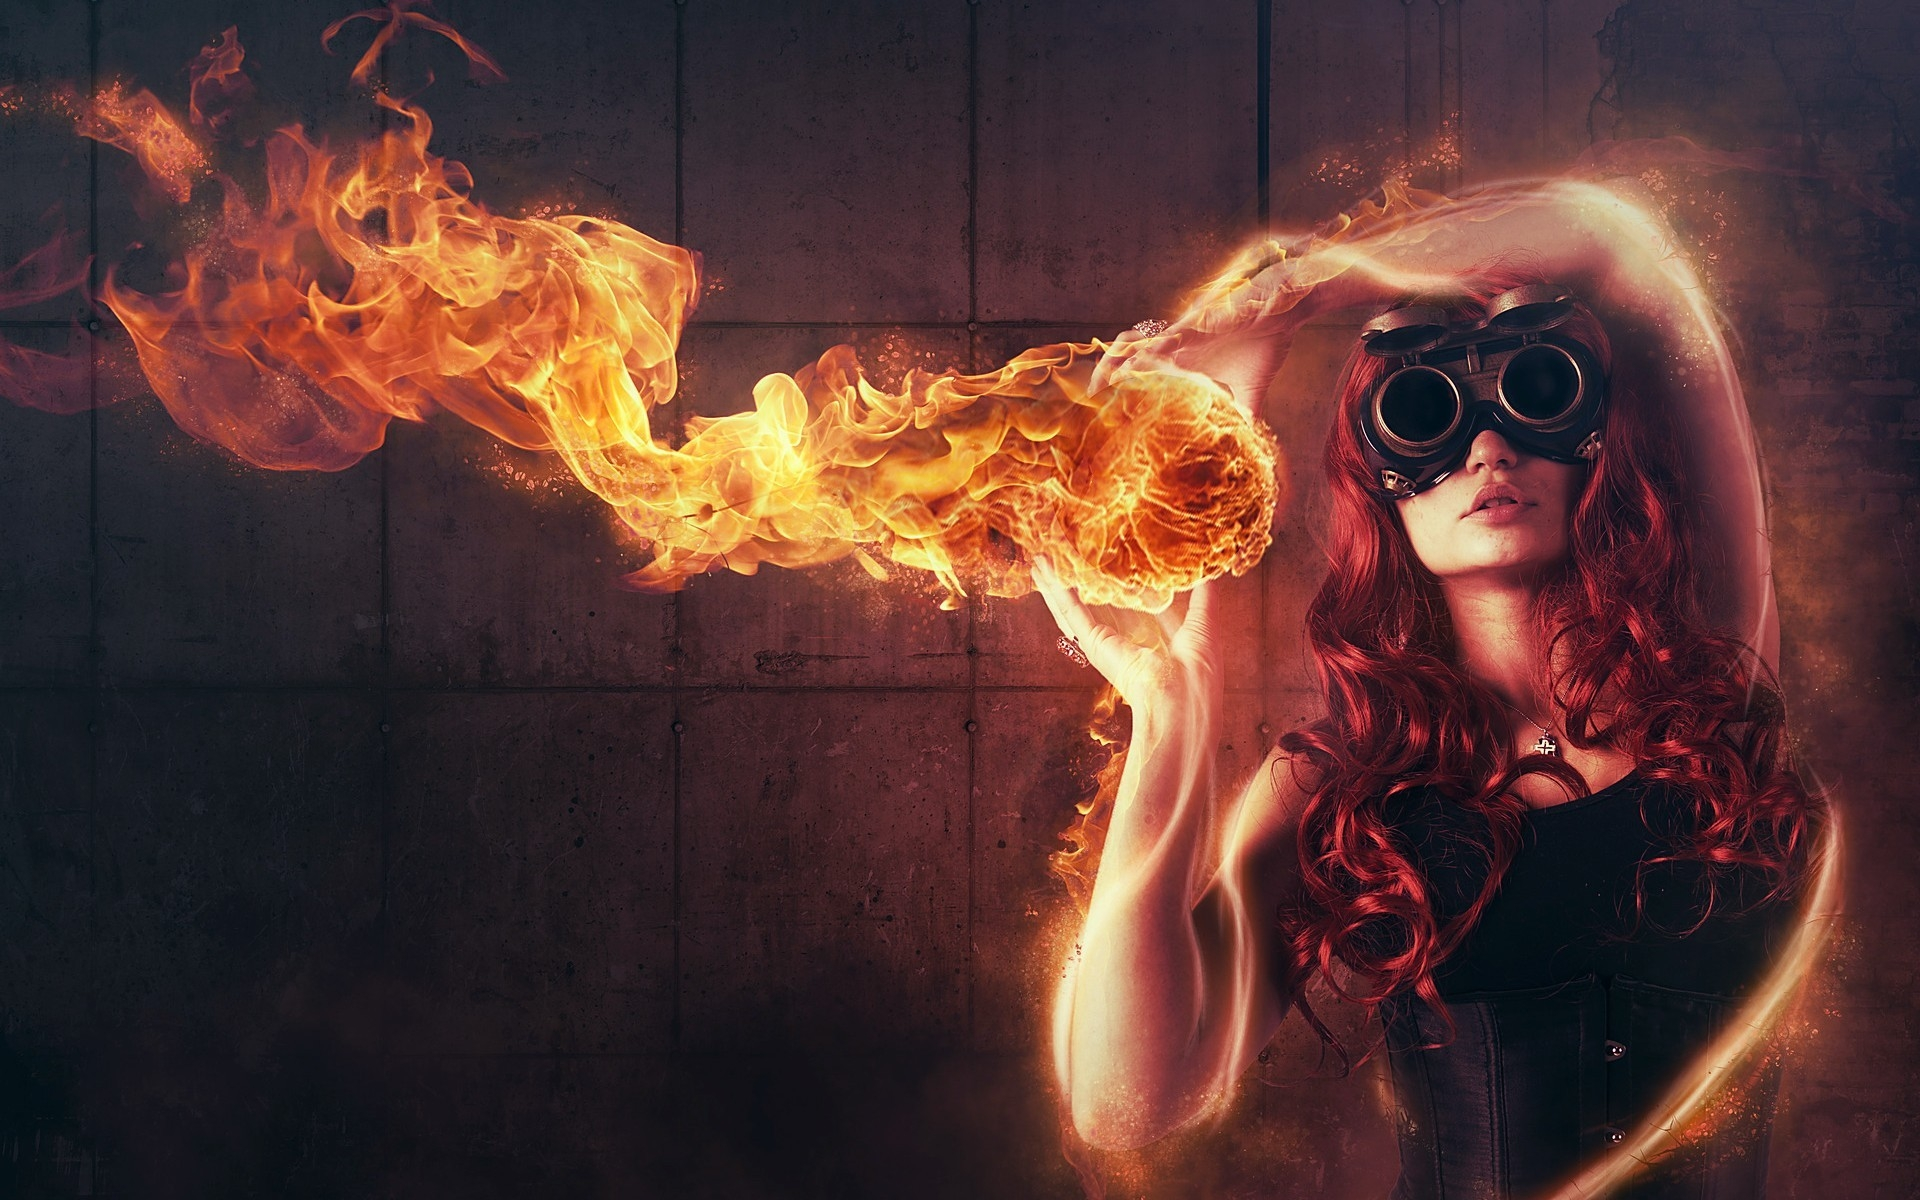 Wallpaper-Woman-Playing-with-Fire